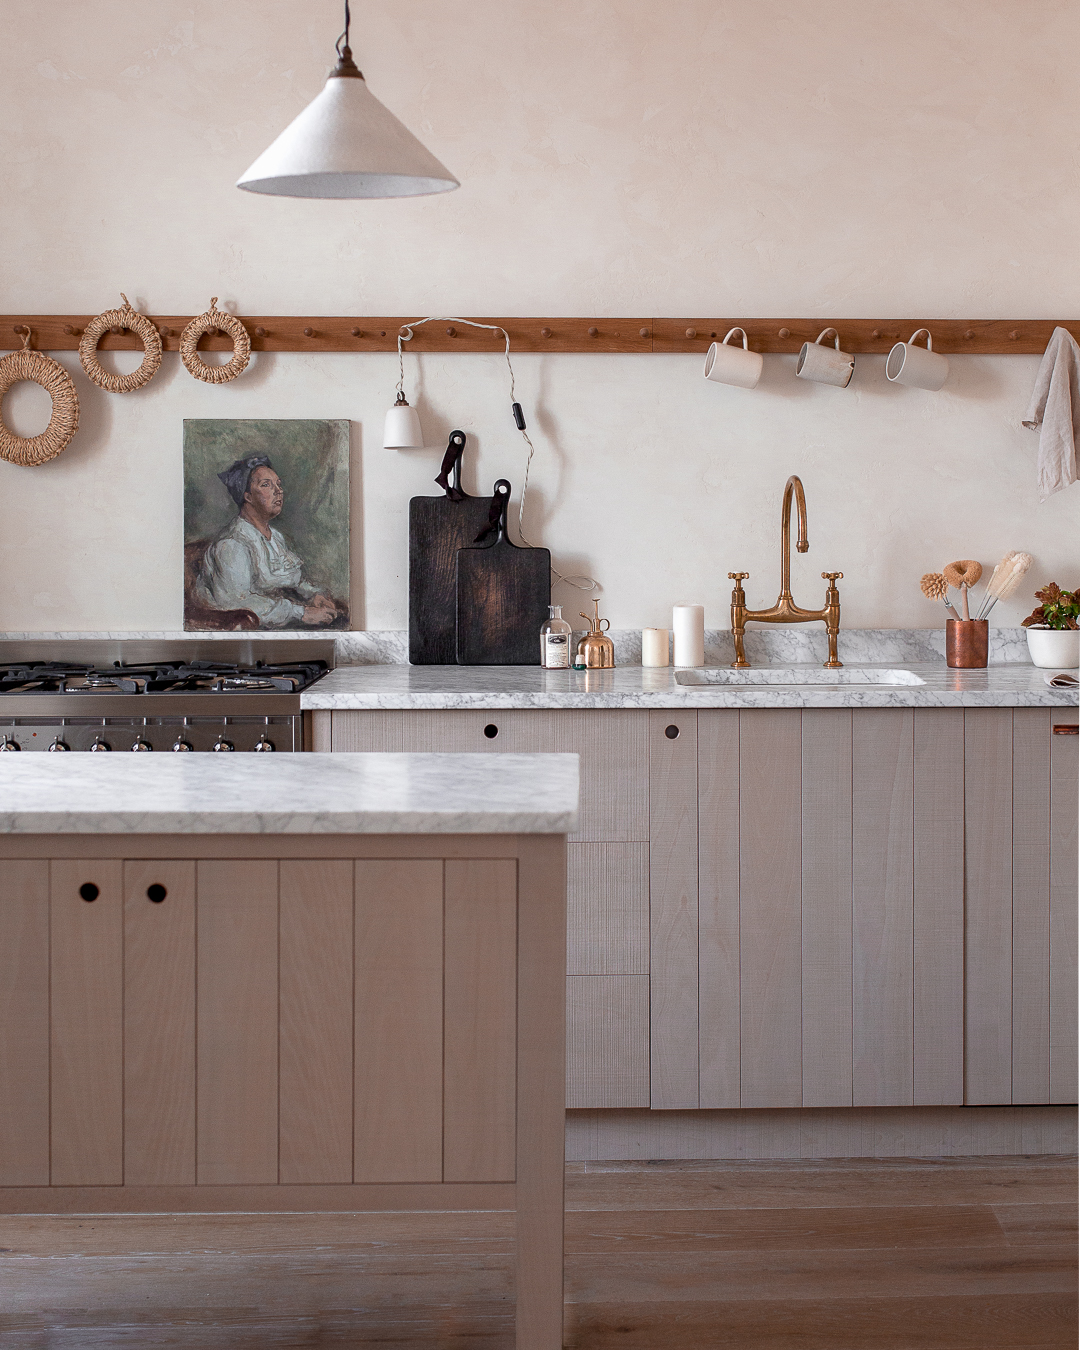 12. Photography Credit to Ingredients LDN - The Ingredients LDN Kitchen by deVOL - Low-Res.jpg